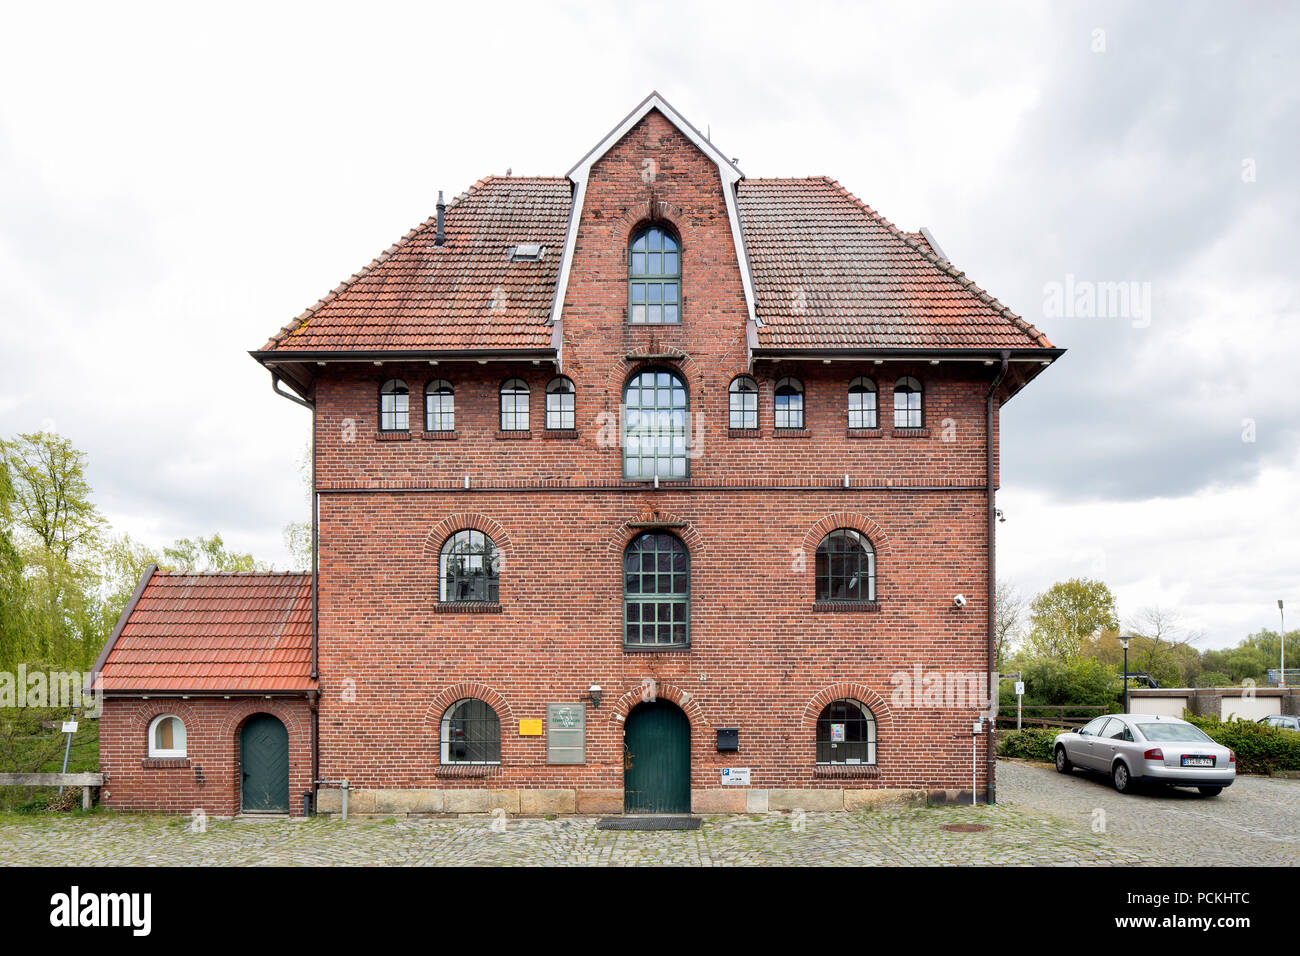 Princely mill on the New Vechte, historic grain mill, Schüttorf, Lower Saxony, Germany - Stock Image